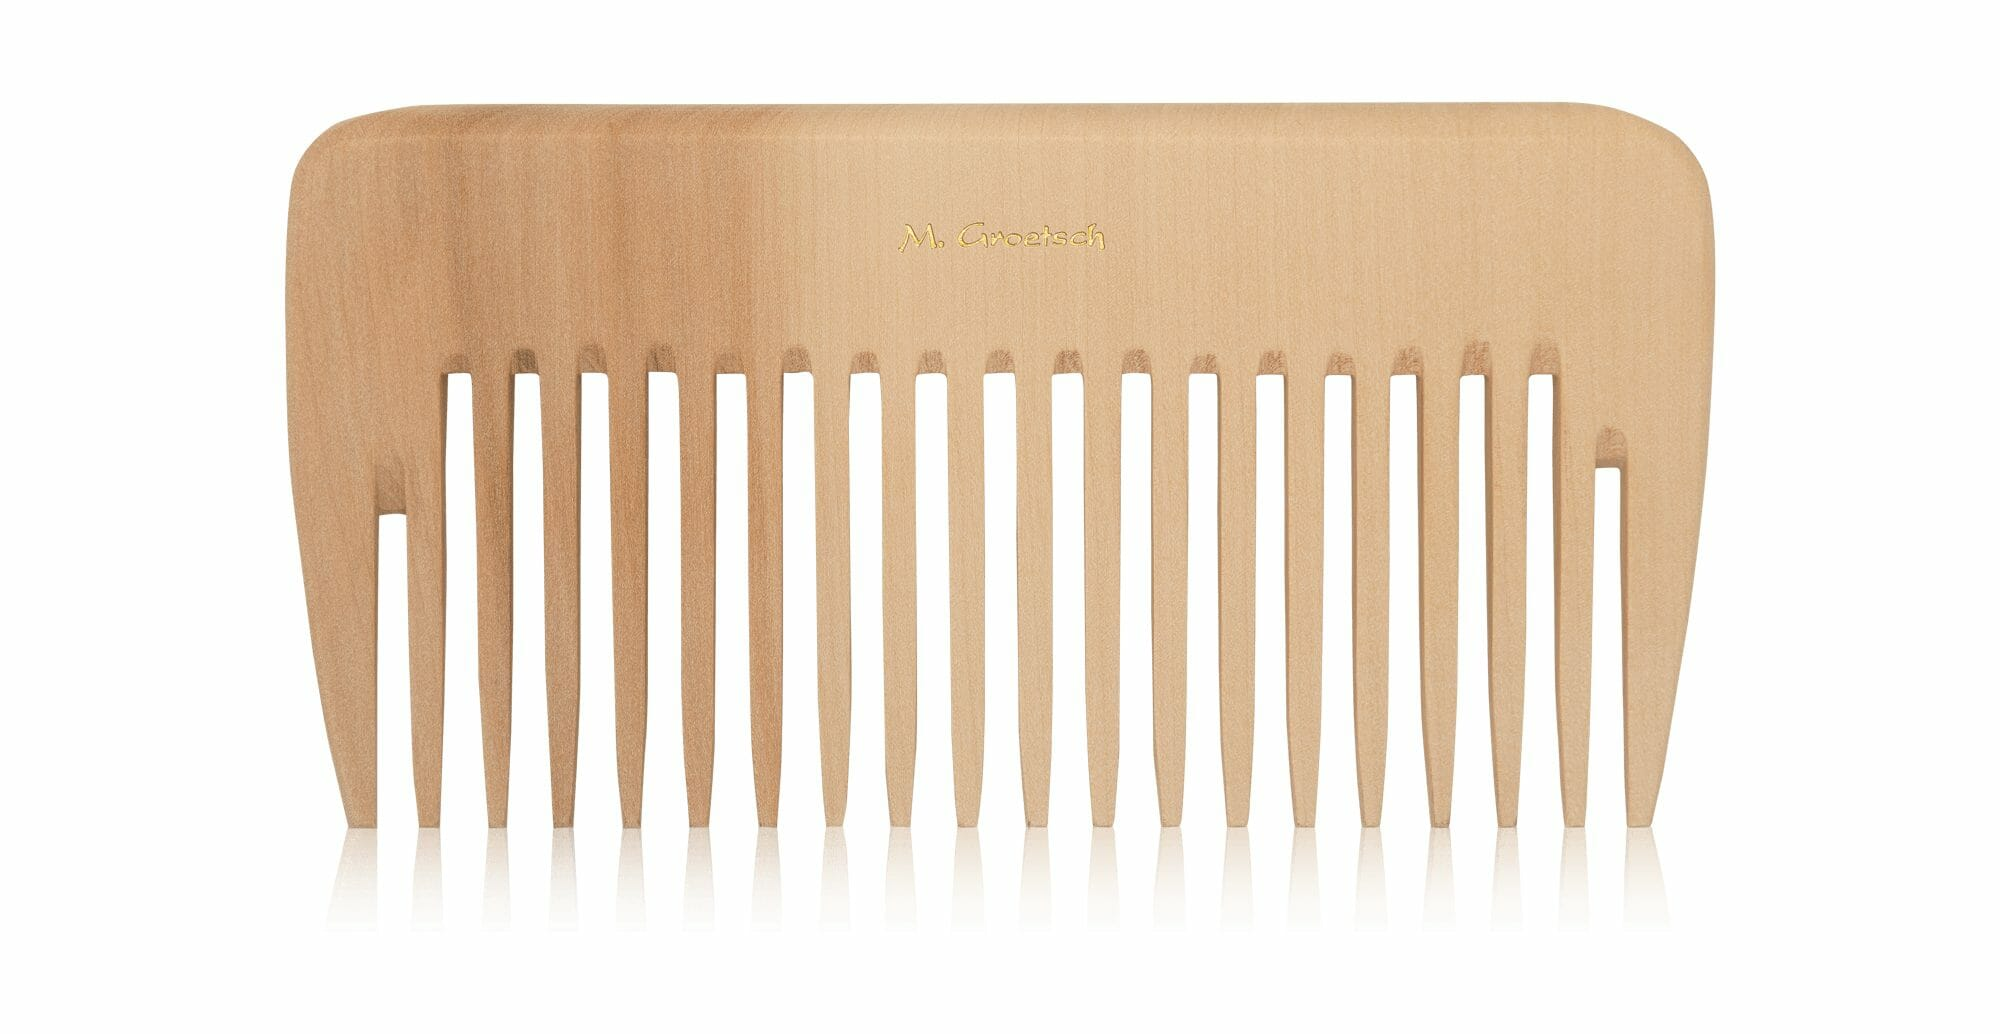 curling comb made of wood